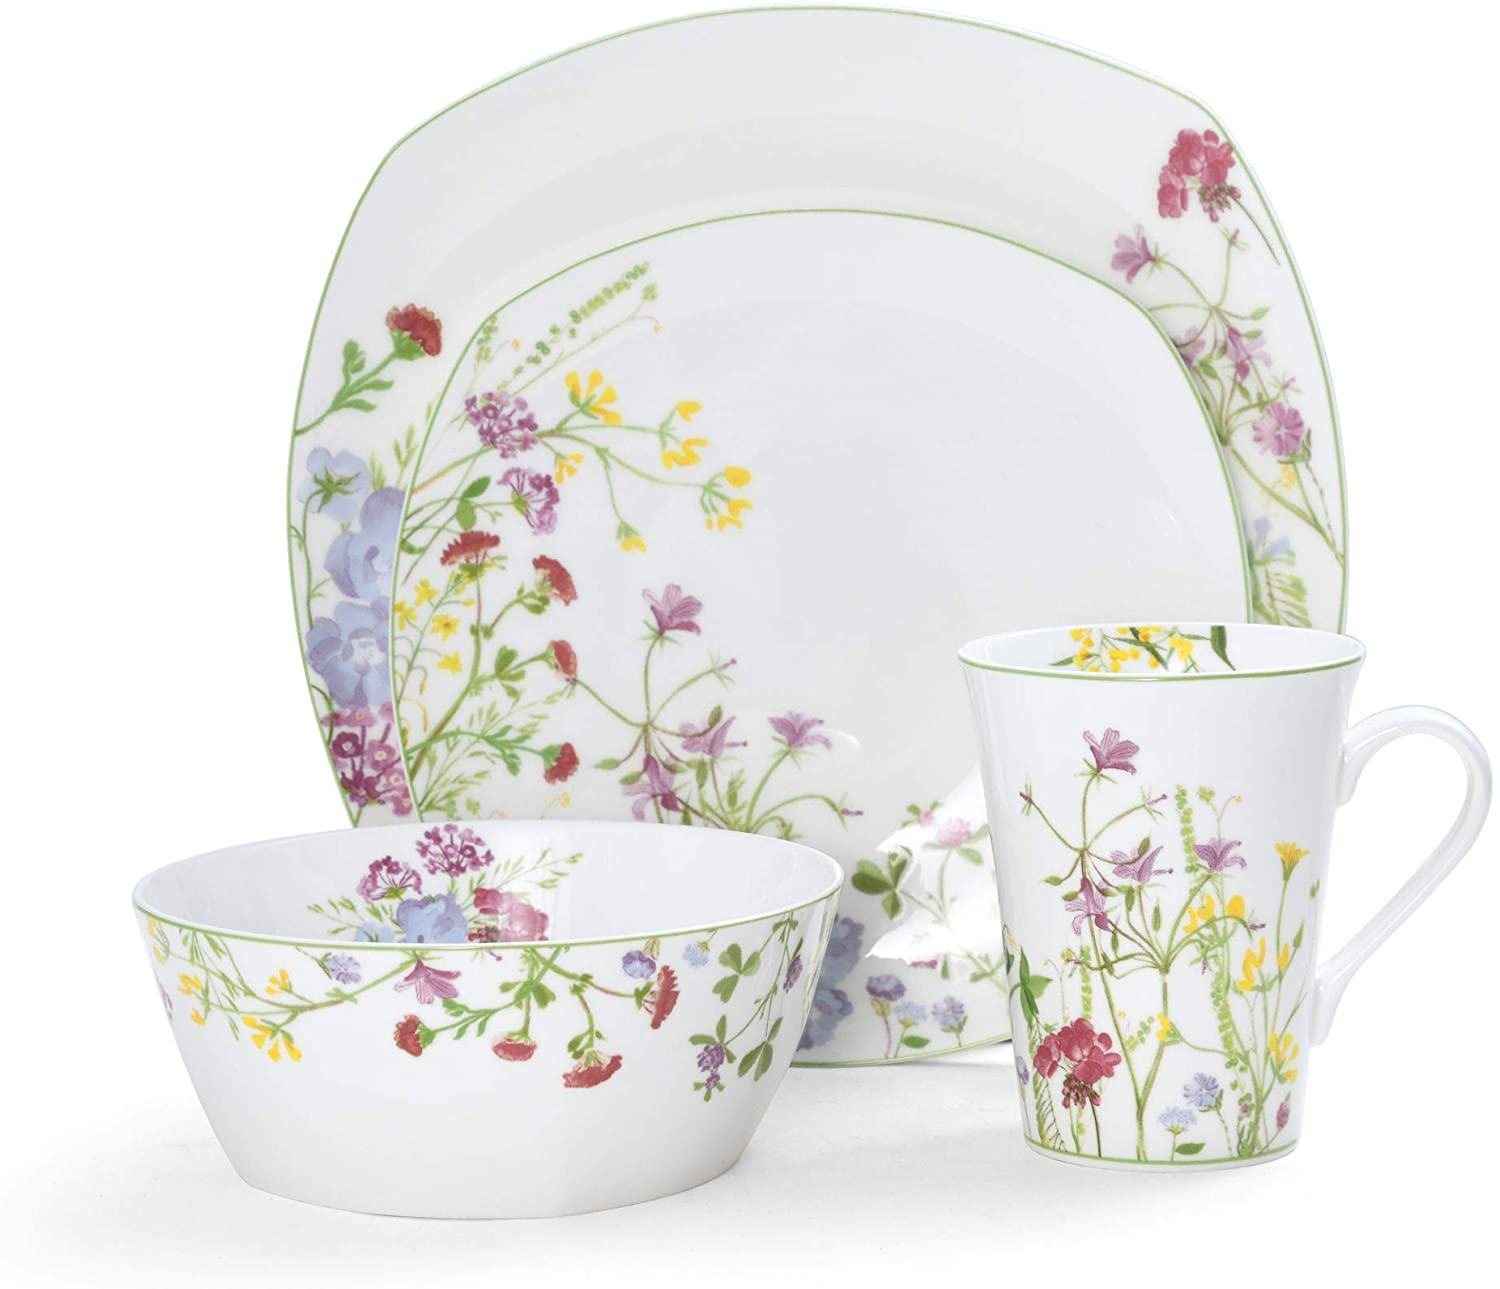 Mikasa Wildflower Garden 16-Piece Dinnerware Set, Assorted